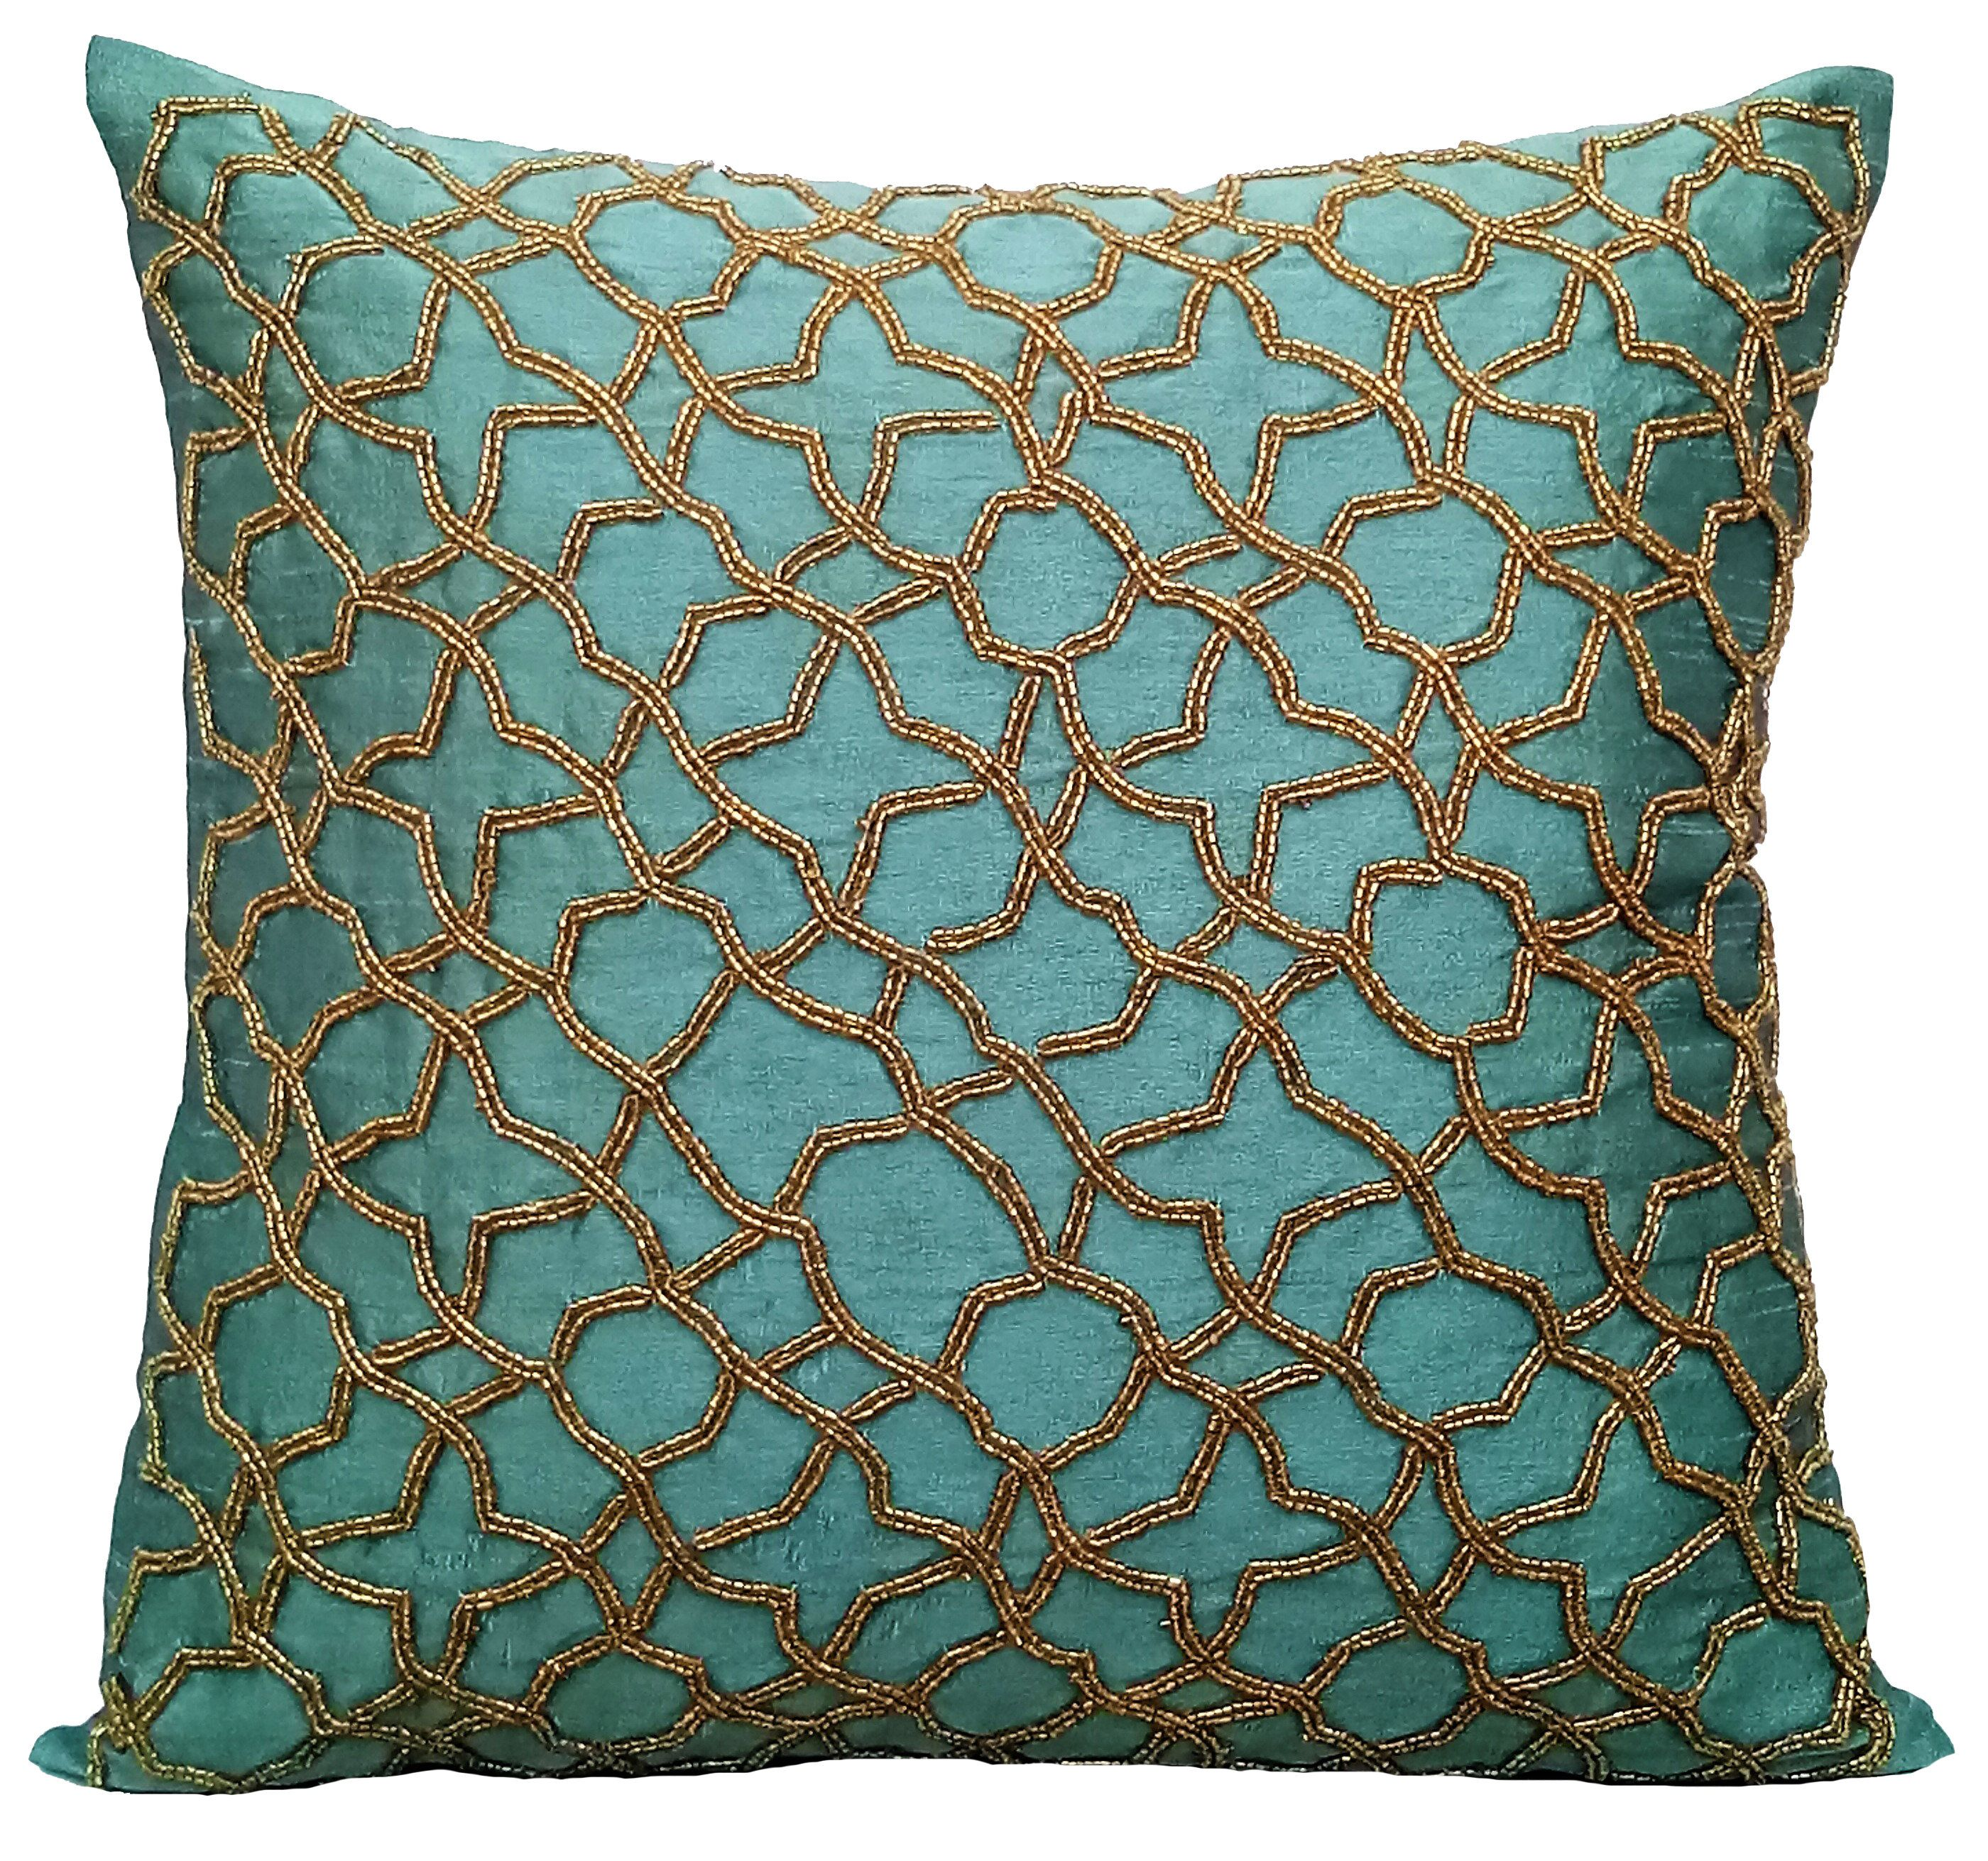 "Teal Accent Pillows Geometric Pillow 16""x16"" Silk Pillows Covers"